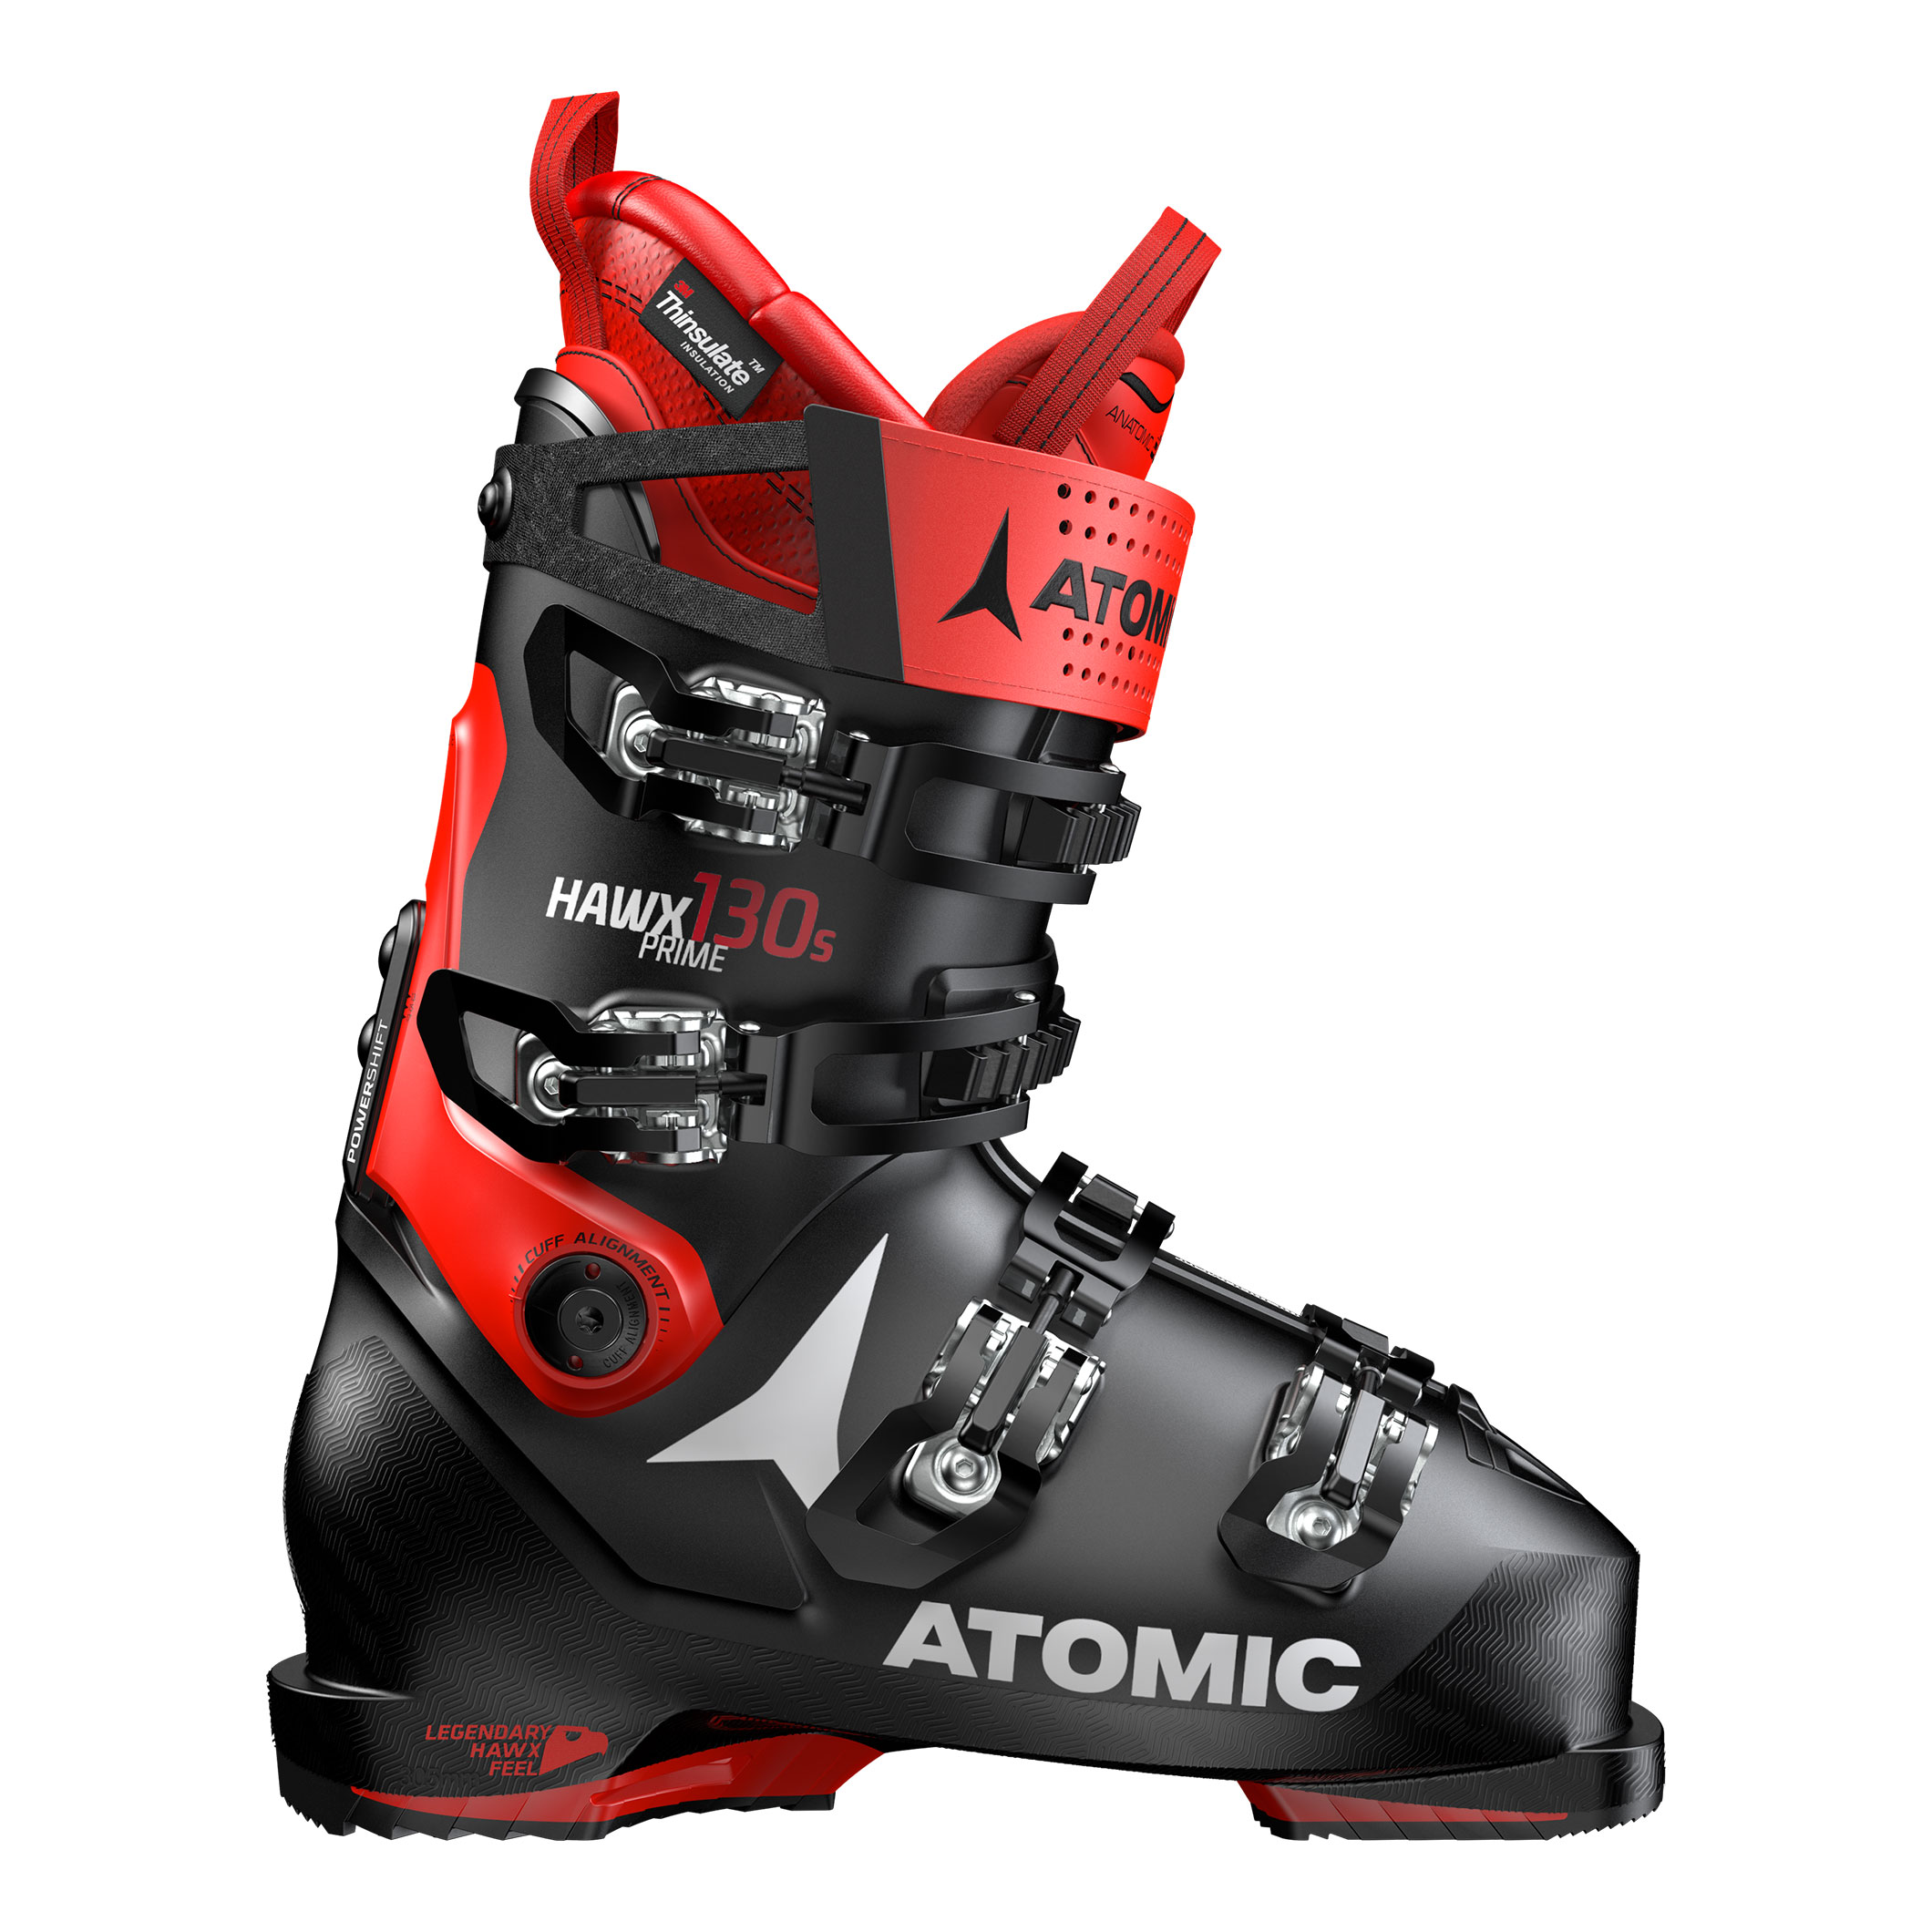 68565a81cd Ski Boots - atomic Hawx Prime 130 S